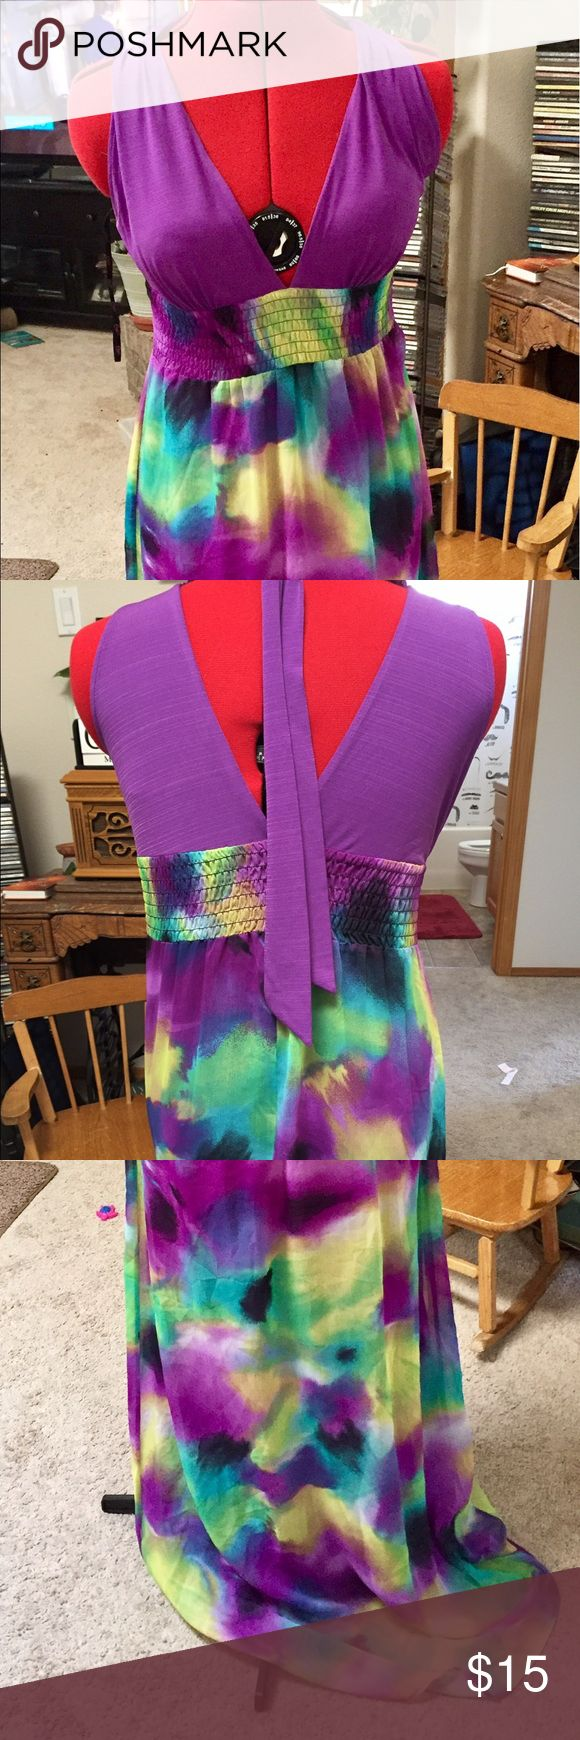 Candies Maxi Dress Candies fun maxi dress size medium   The halter top is purple and the skirt is multi Candie's Dresses Maxi